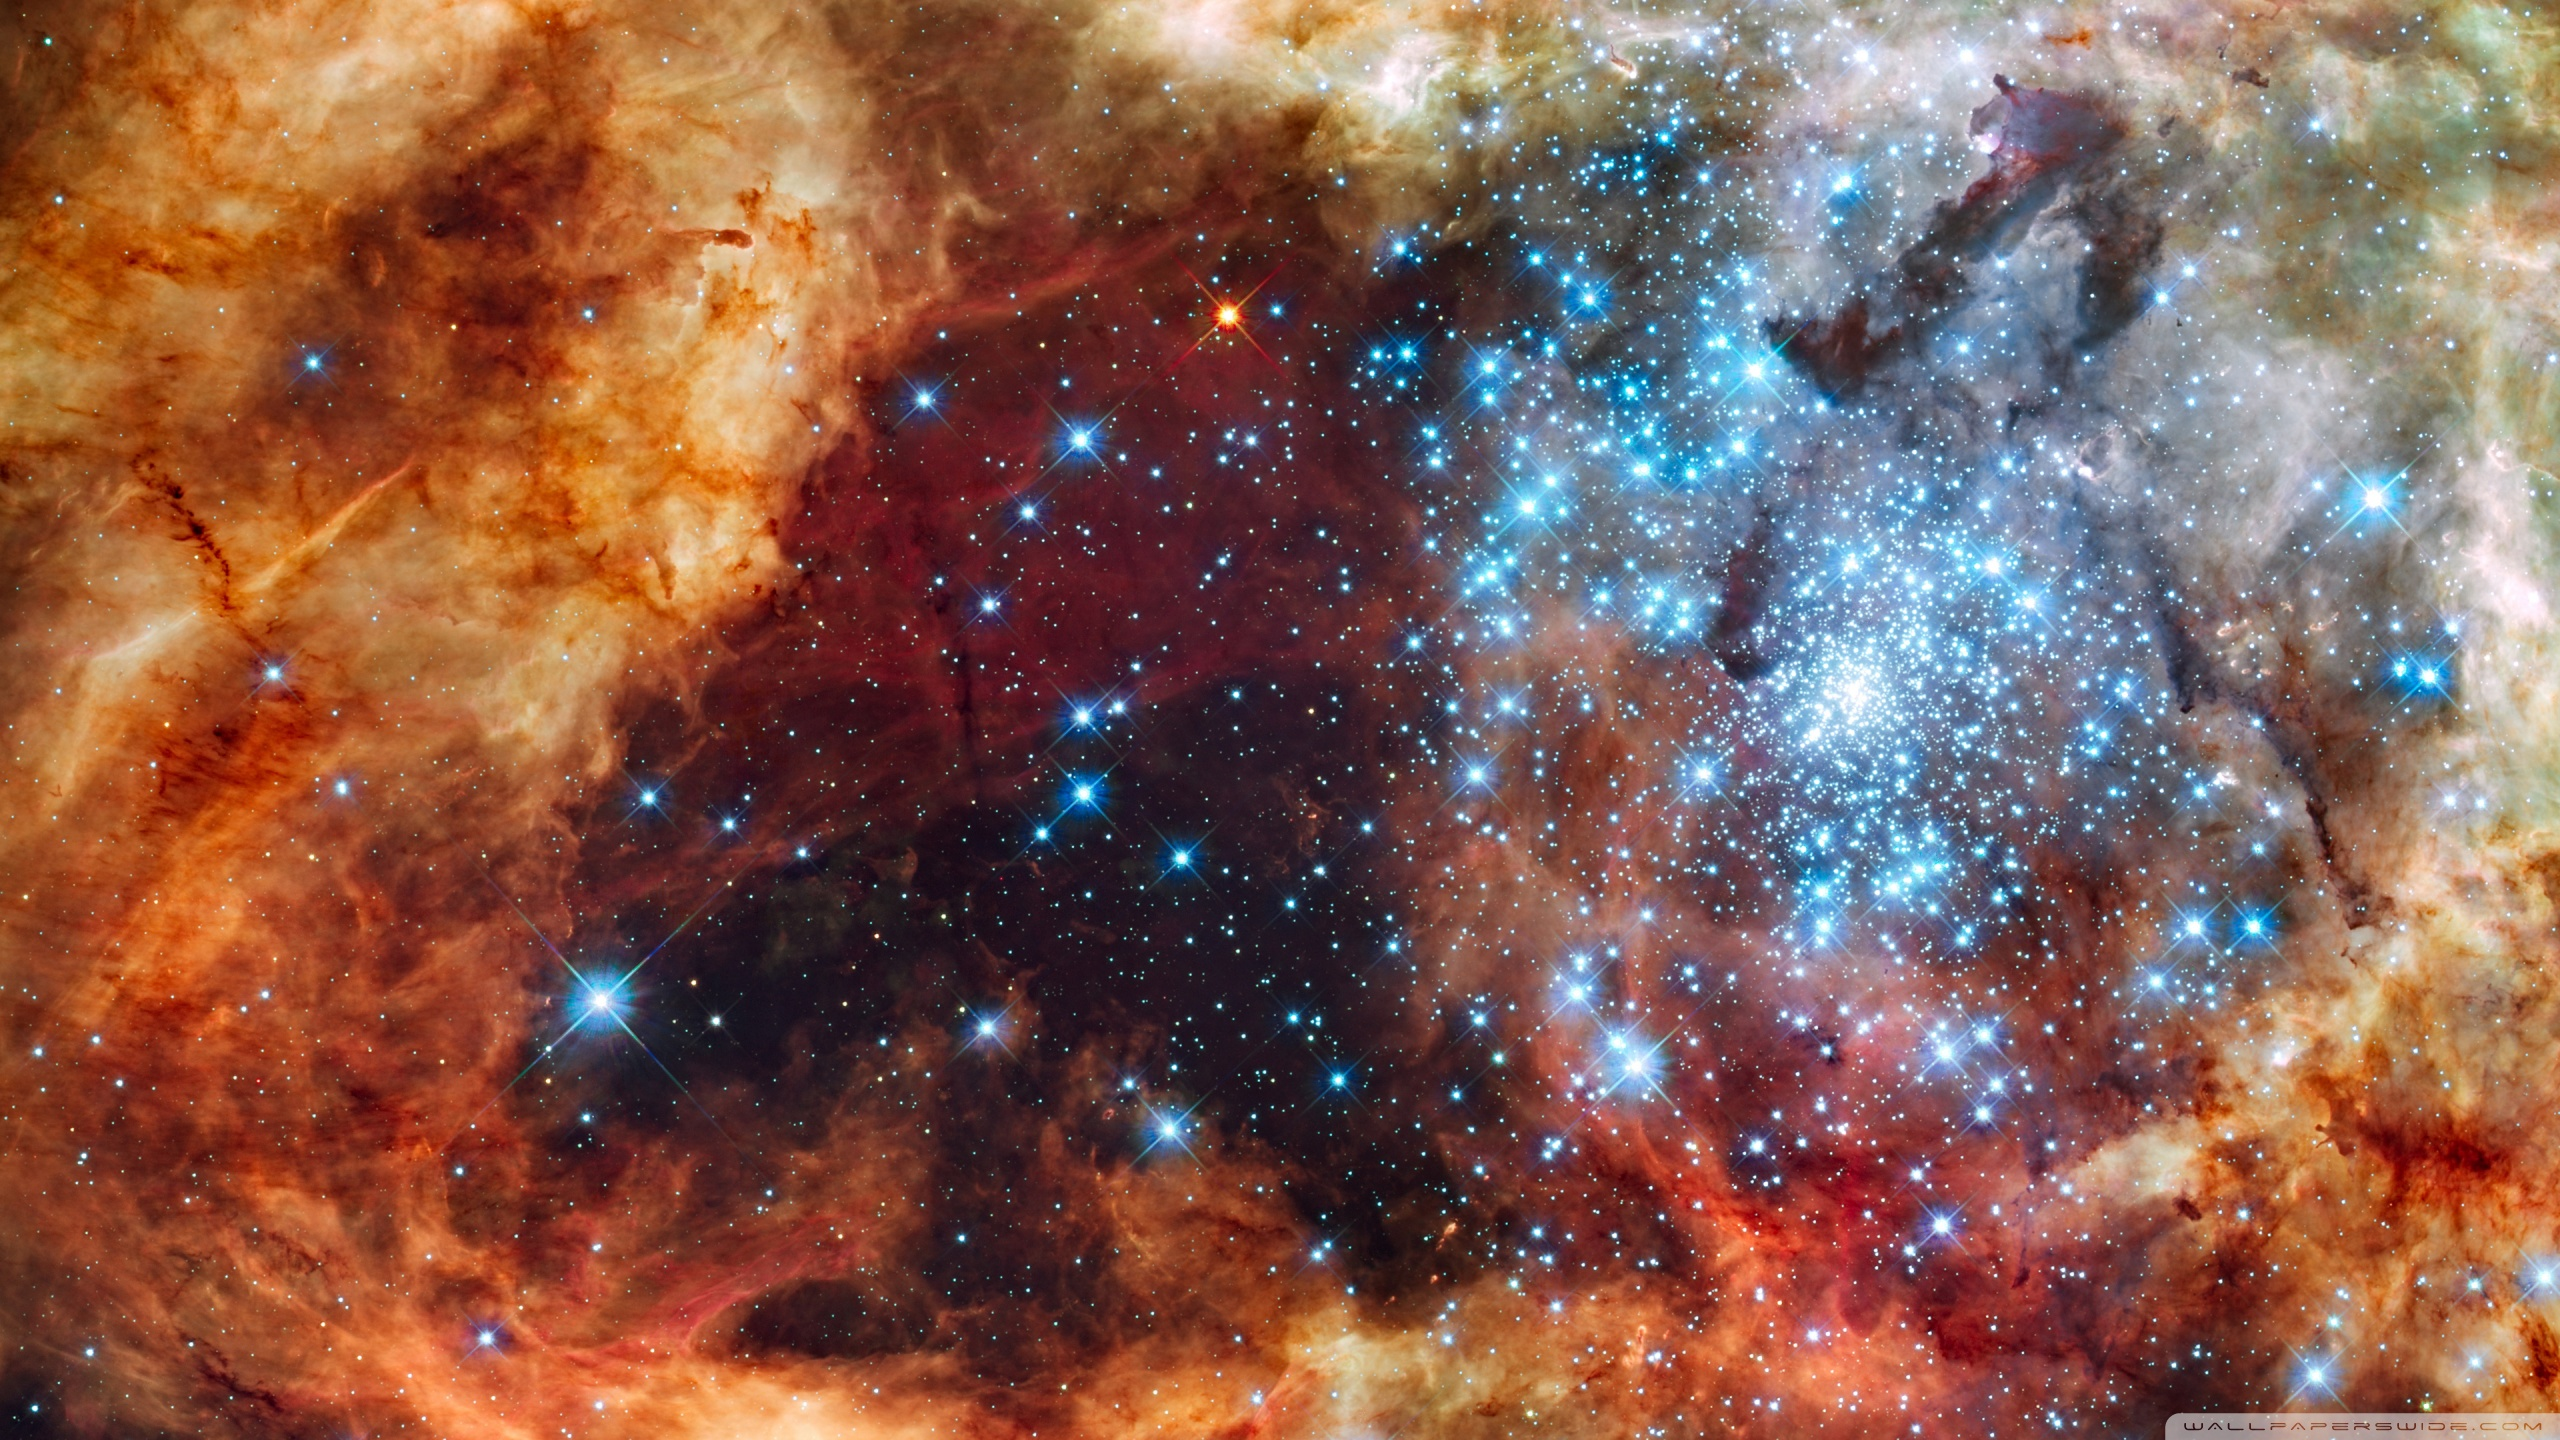 2560x1440 - Star Cluster Wallpapers 37